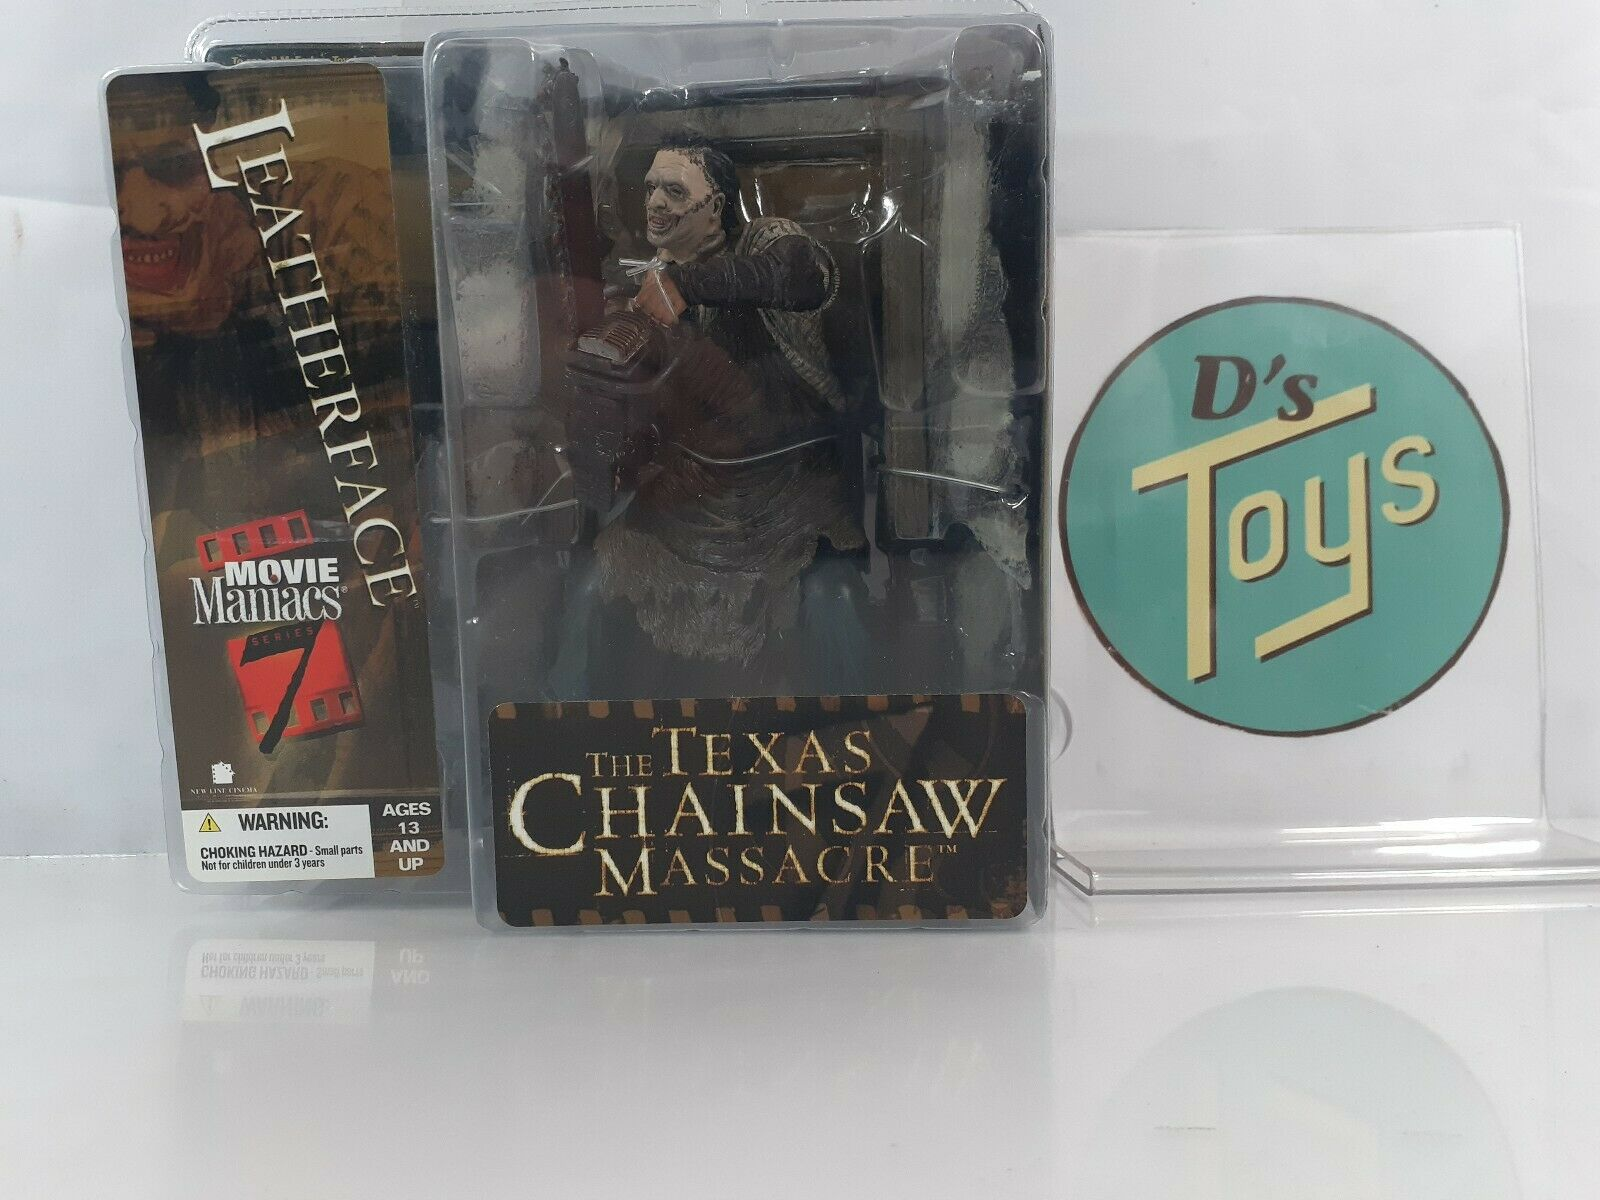 McFarlane Toys Movie Maniacs Series 7 Texas Chainsaw Massacre Remake LeatherFace